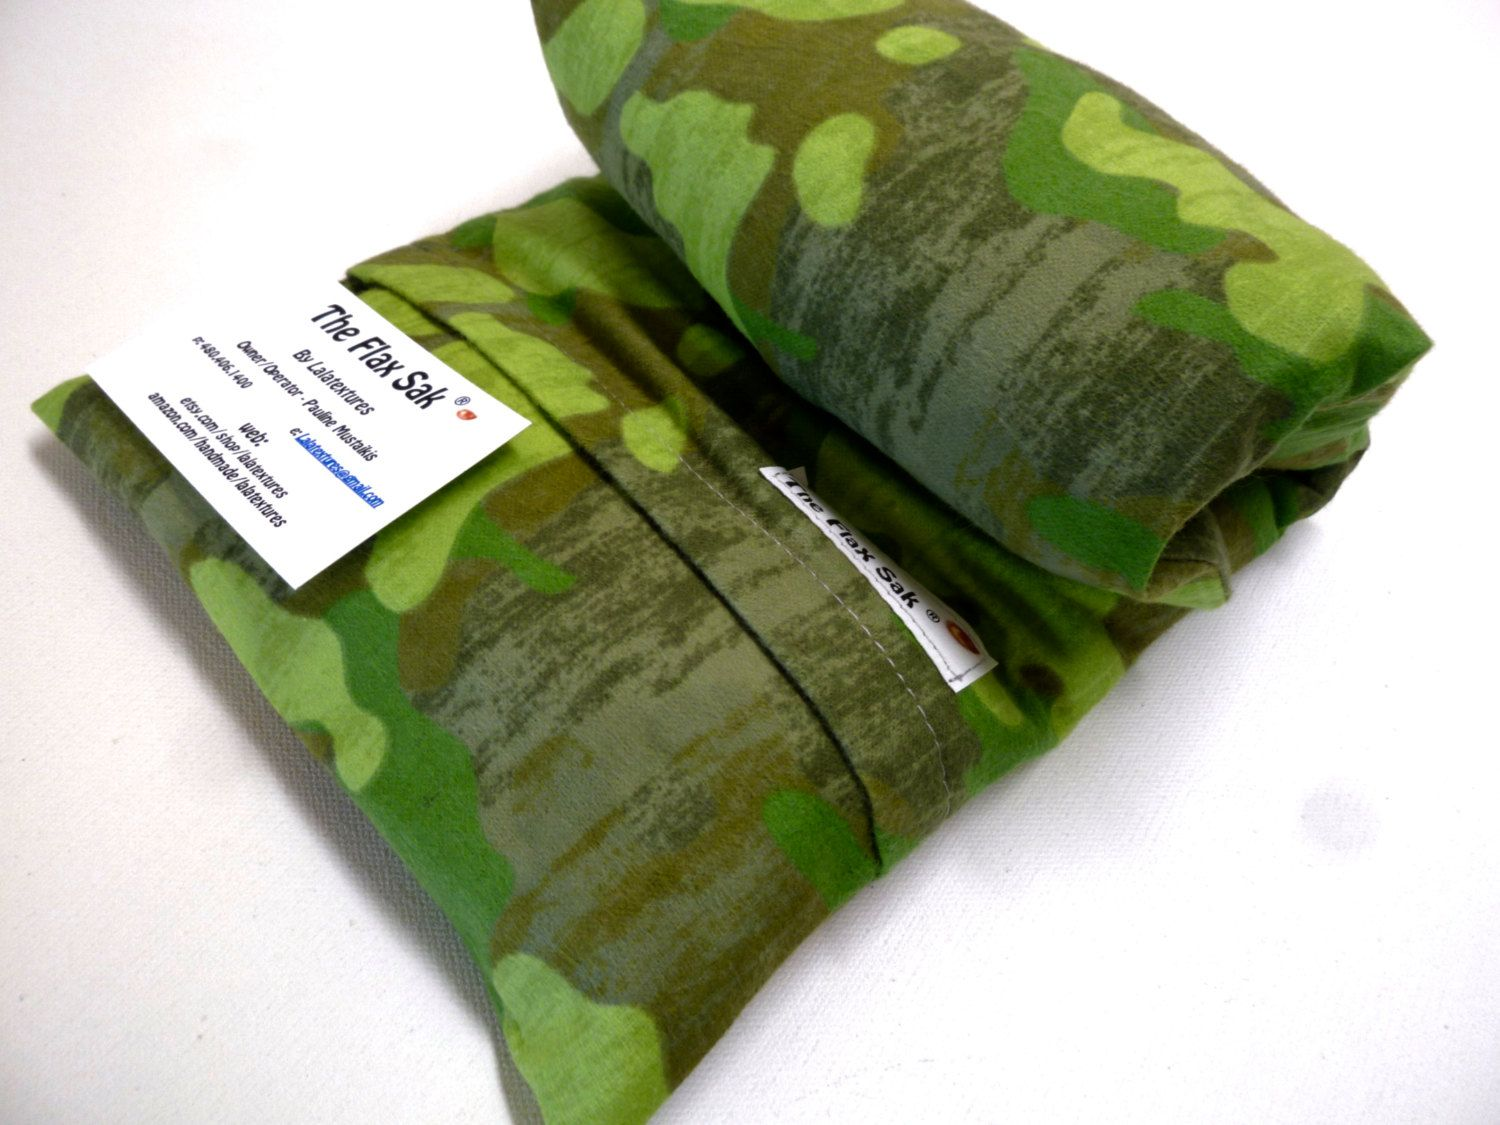 FLAX HEATING PAD - Microwave -  Camo - Removable - Washable Flannel cover  - stocking stuffer -  Great  Christmas Gift -  The FLaX SaK by lalatextures on Etsy